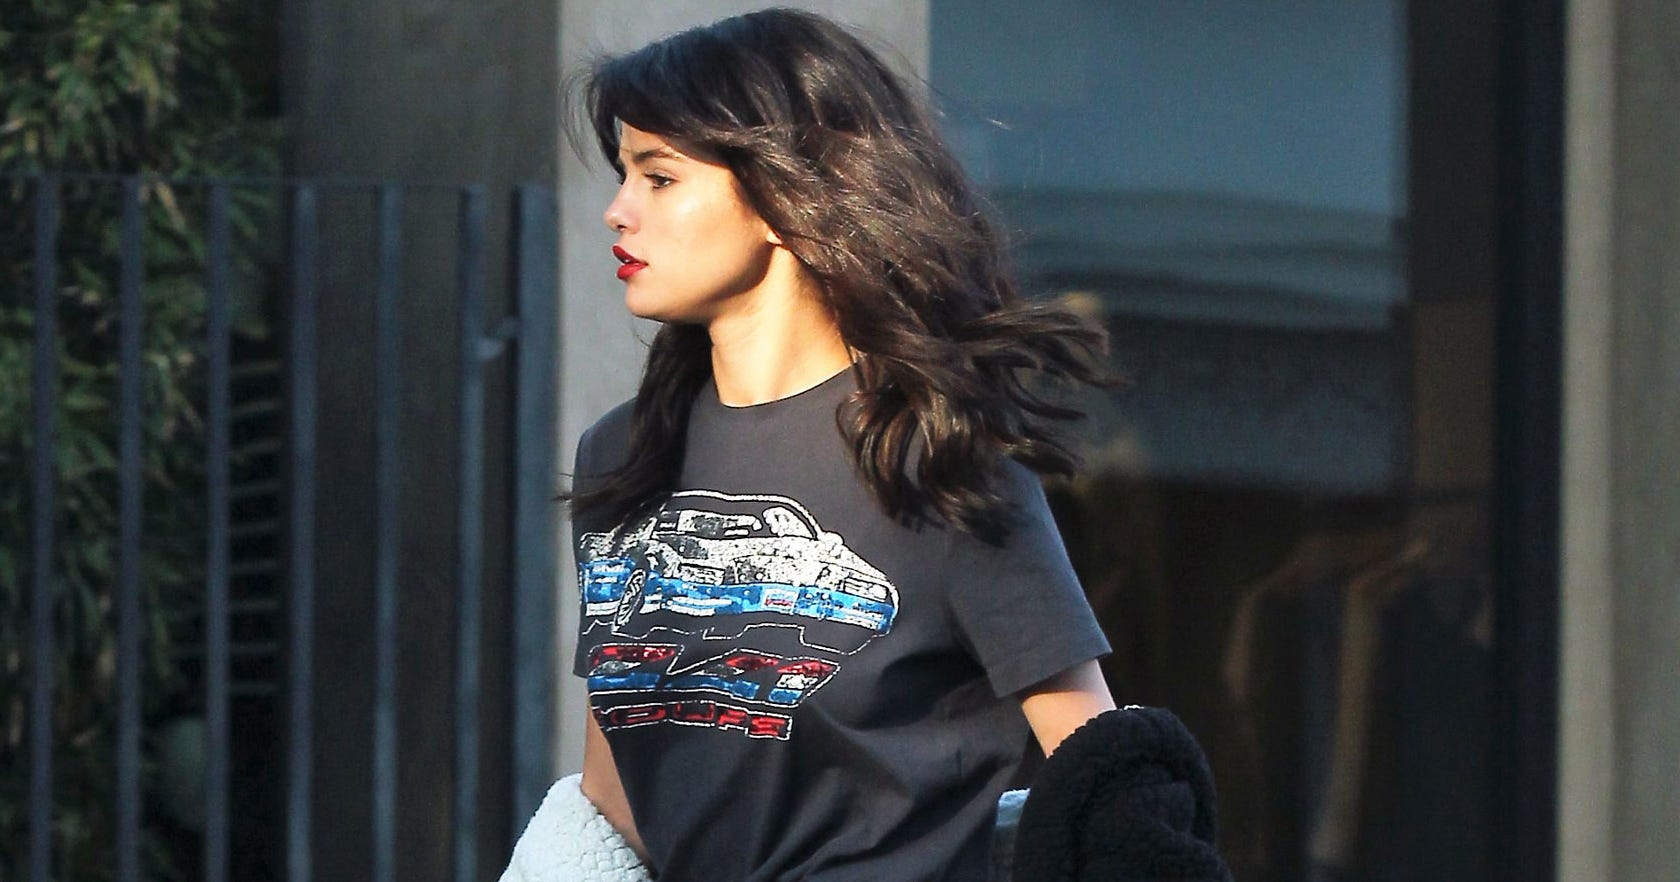 Selena Gomez's First Coach Purchase Was Probably The Same As Yours